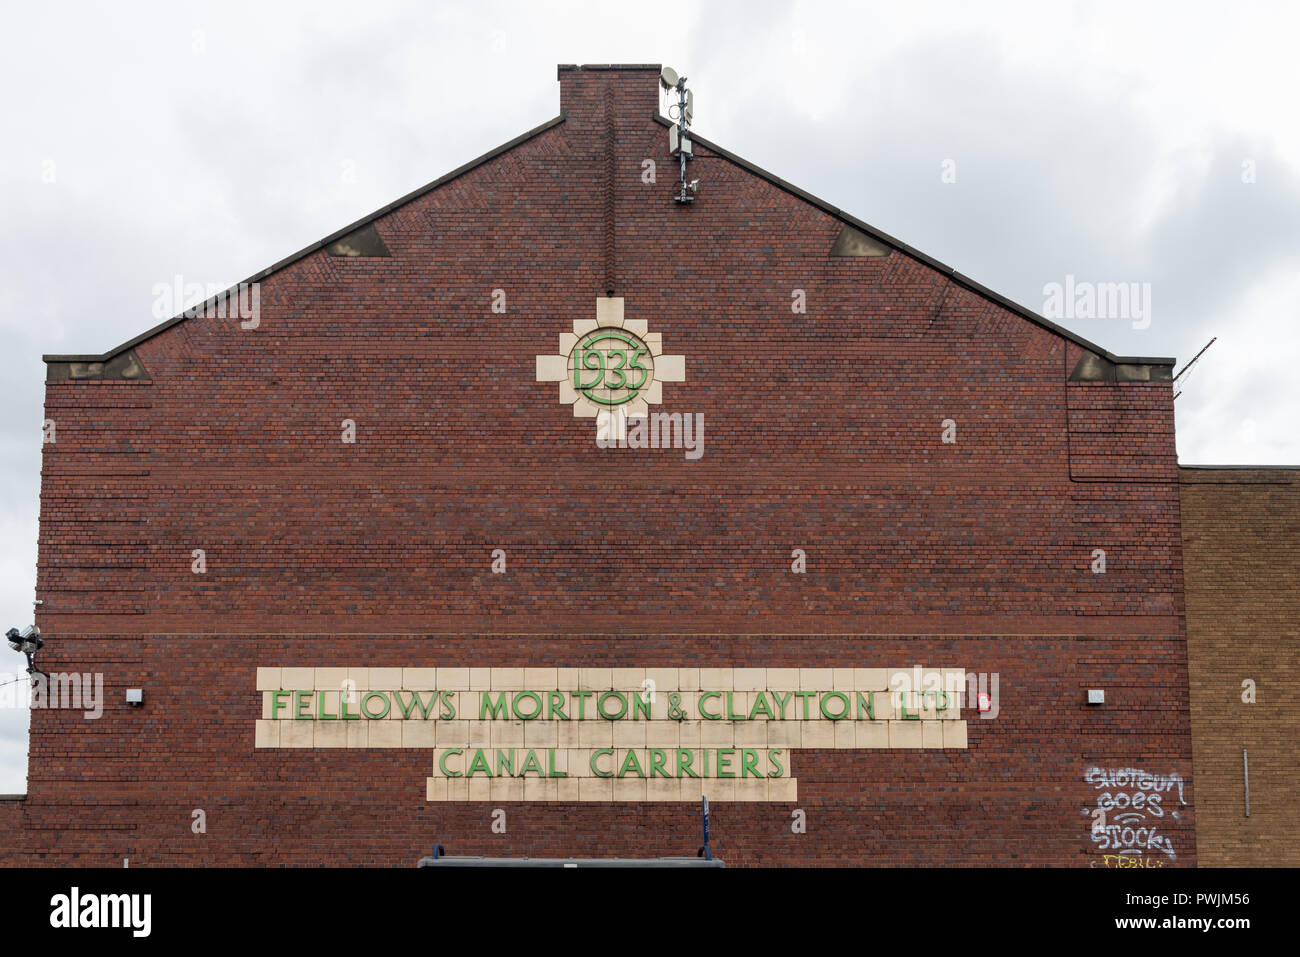 Former warehouse of Fellows, Morton & Clayton Canal Carriers in Digbeth, Birmingham - Stock Image